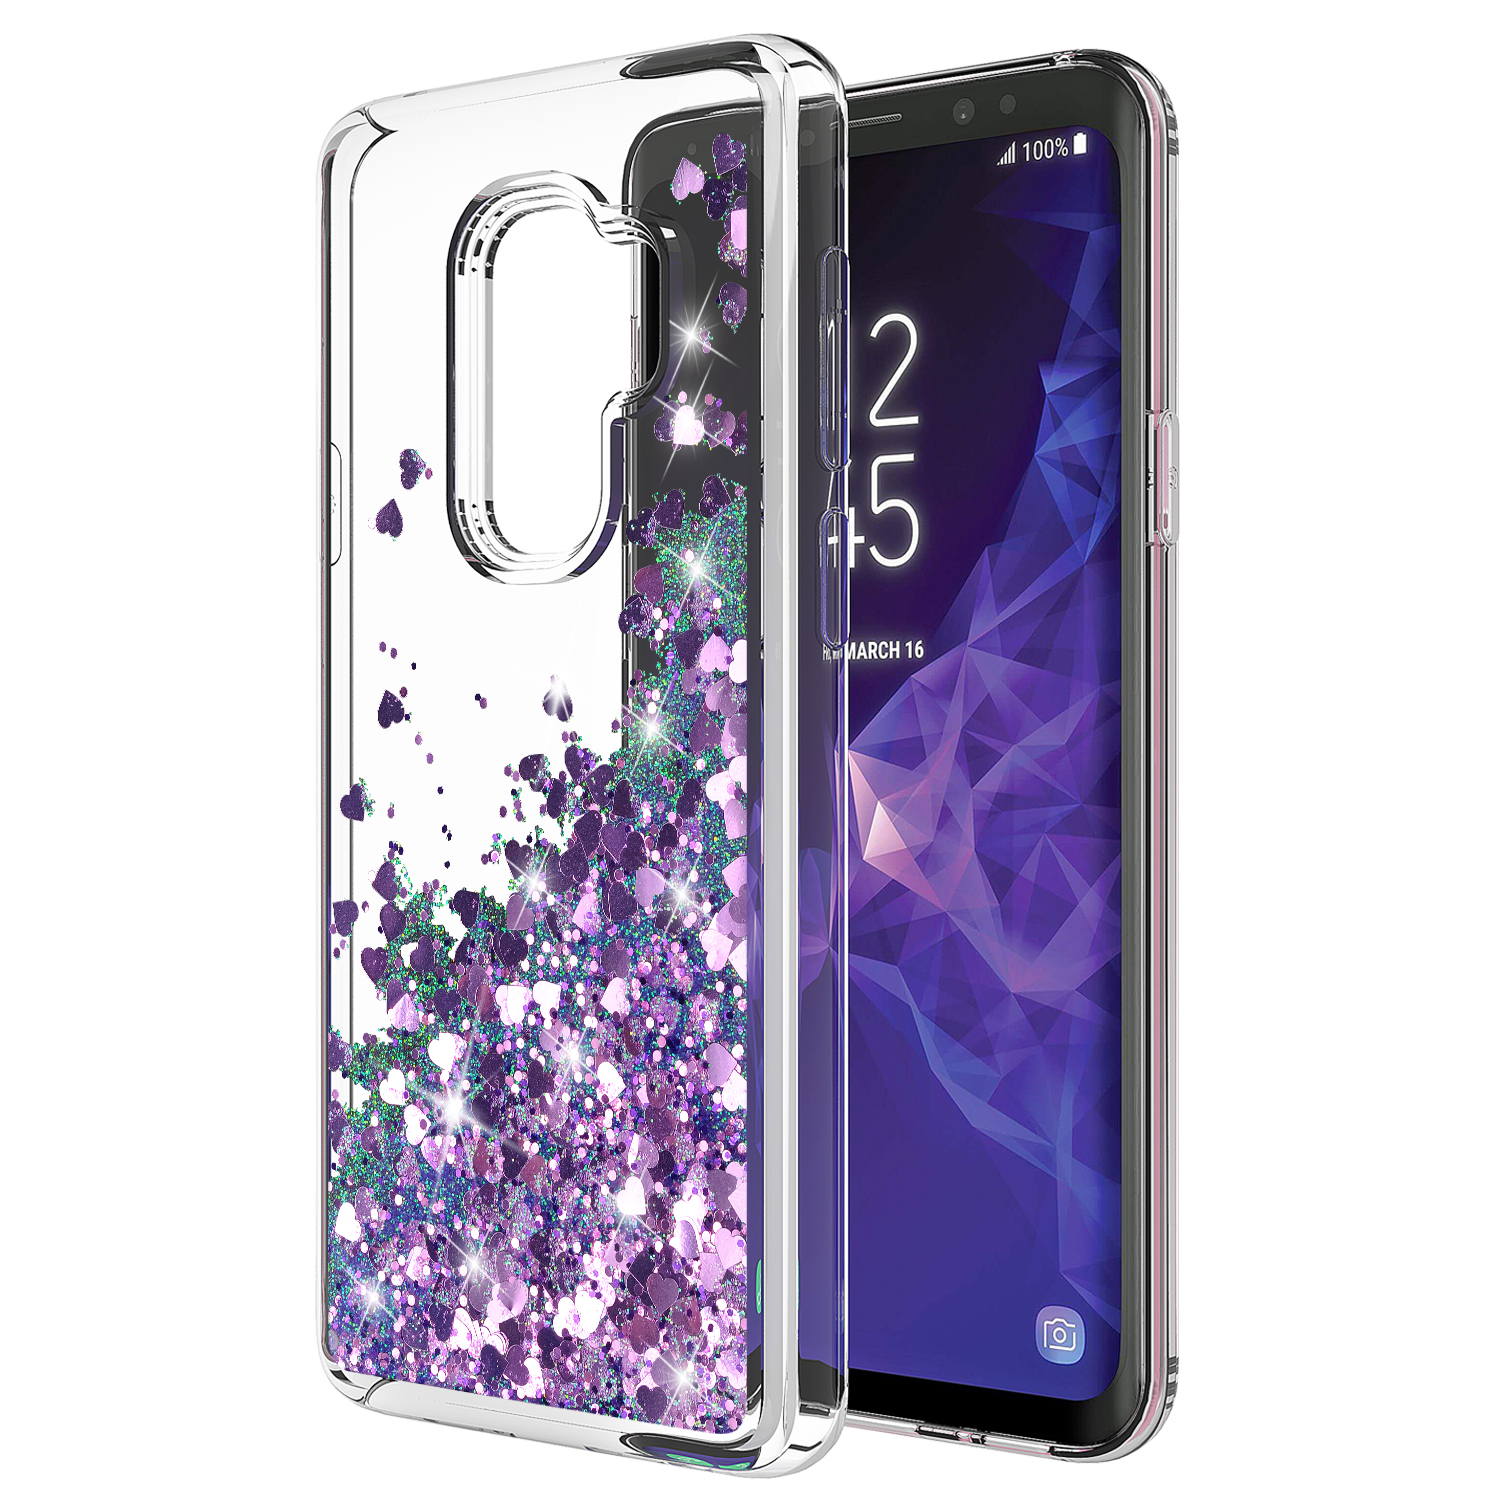 GALAXY S9 PLUS CASE, S9 PLUS CASE, Cute Sparkly Shiny Glitter Bling Luxury Fashion Liquid Quicksand for Teen Girls Women Soft Clear TPU Bumper Cover For SAMSUNG GALAXY S9 PLUS (PURPLE)